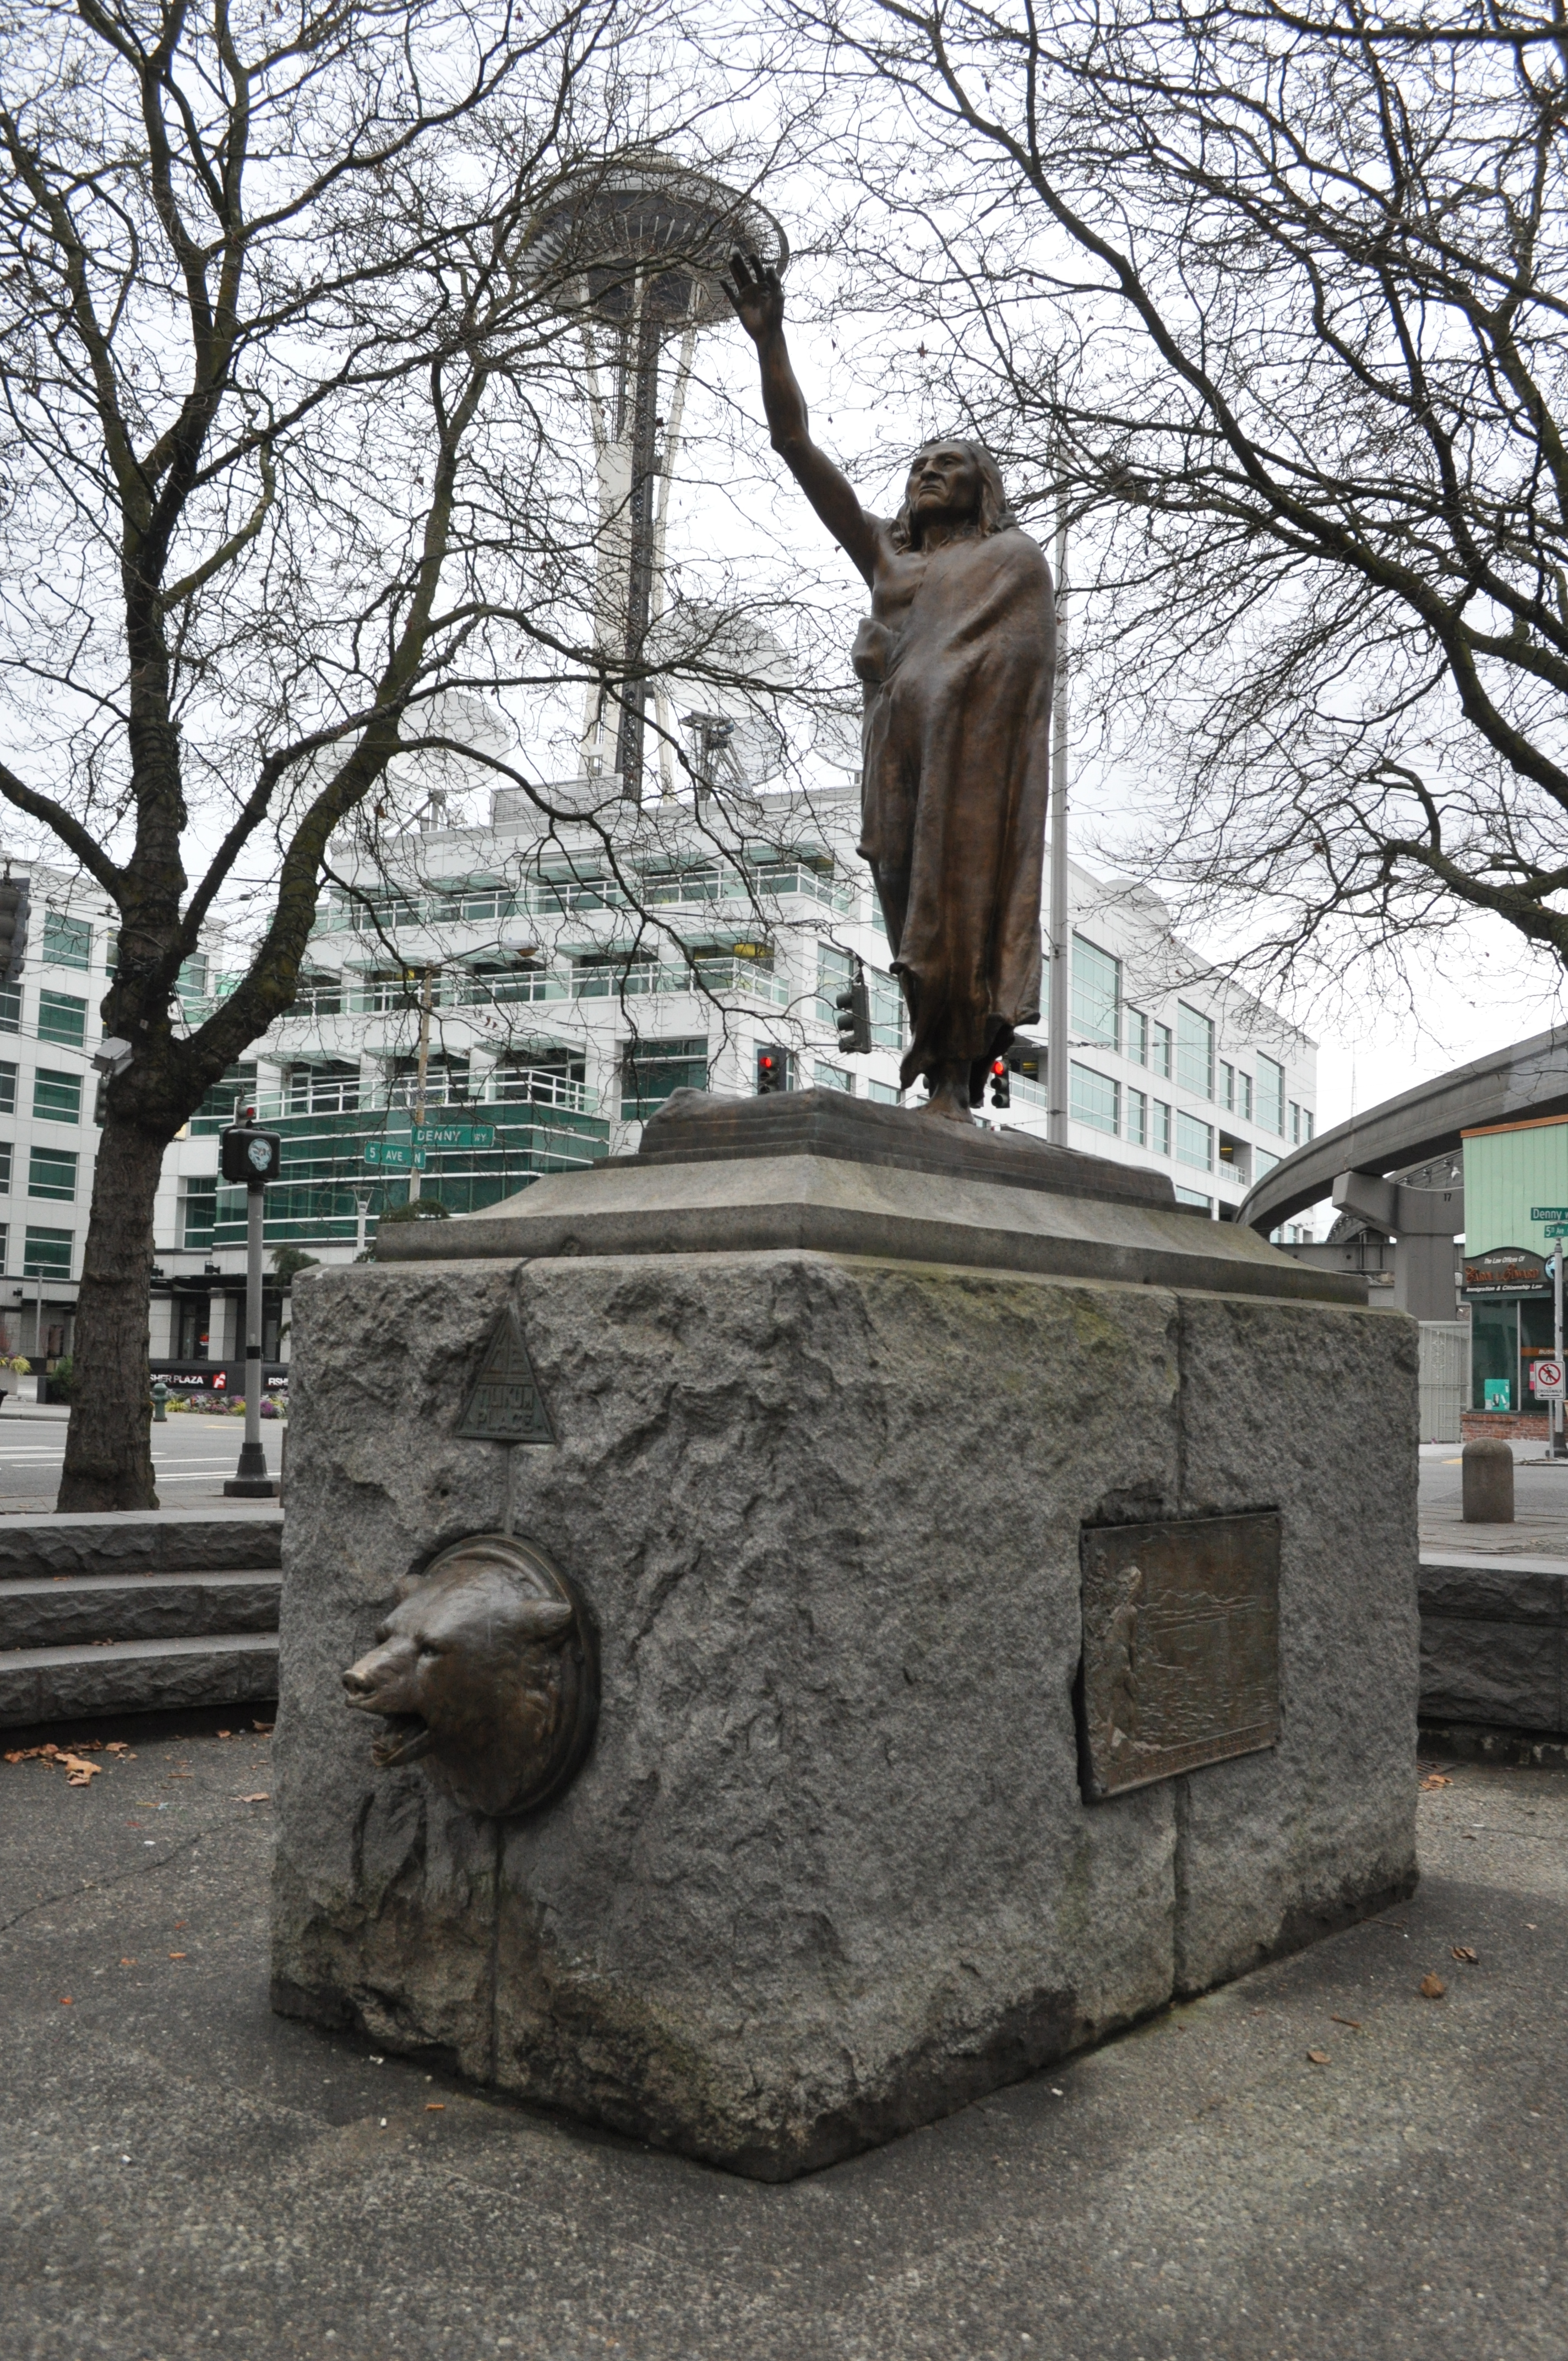 Chief Seattle Statue at Tilikum Place Park (image from Wikimedia Commons)